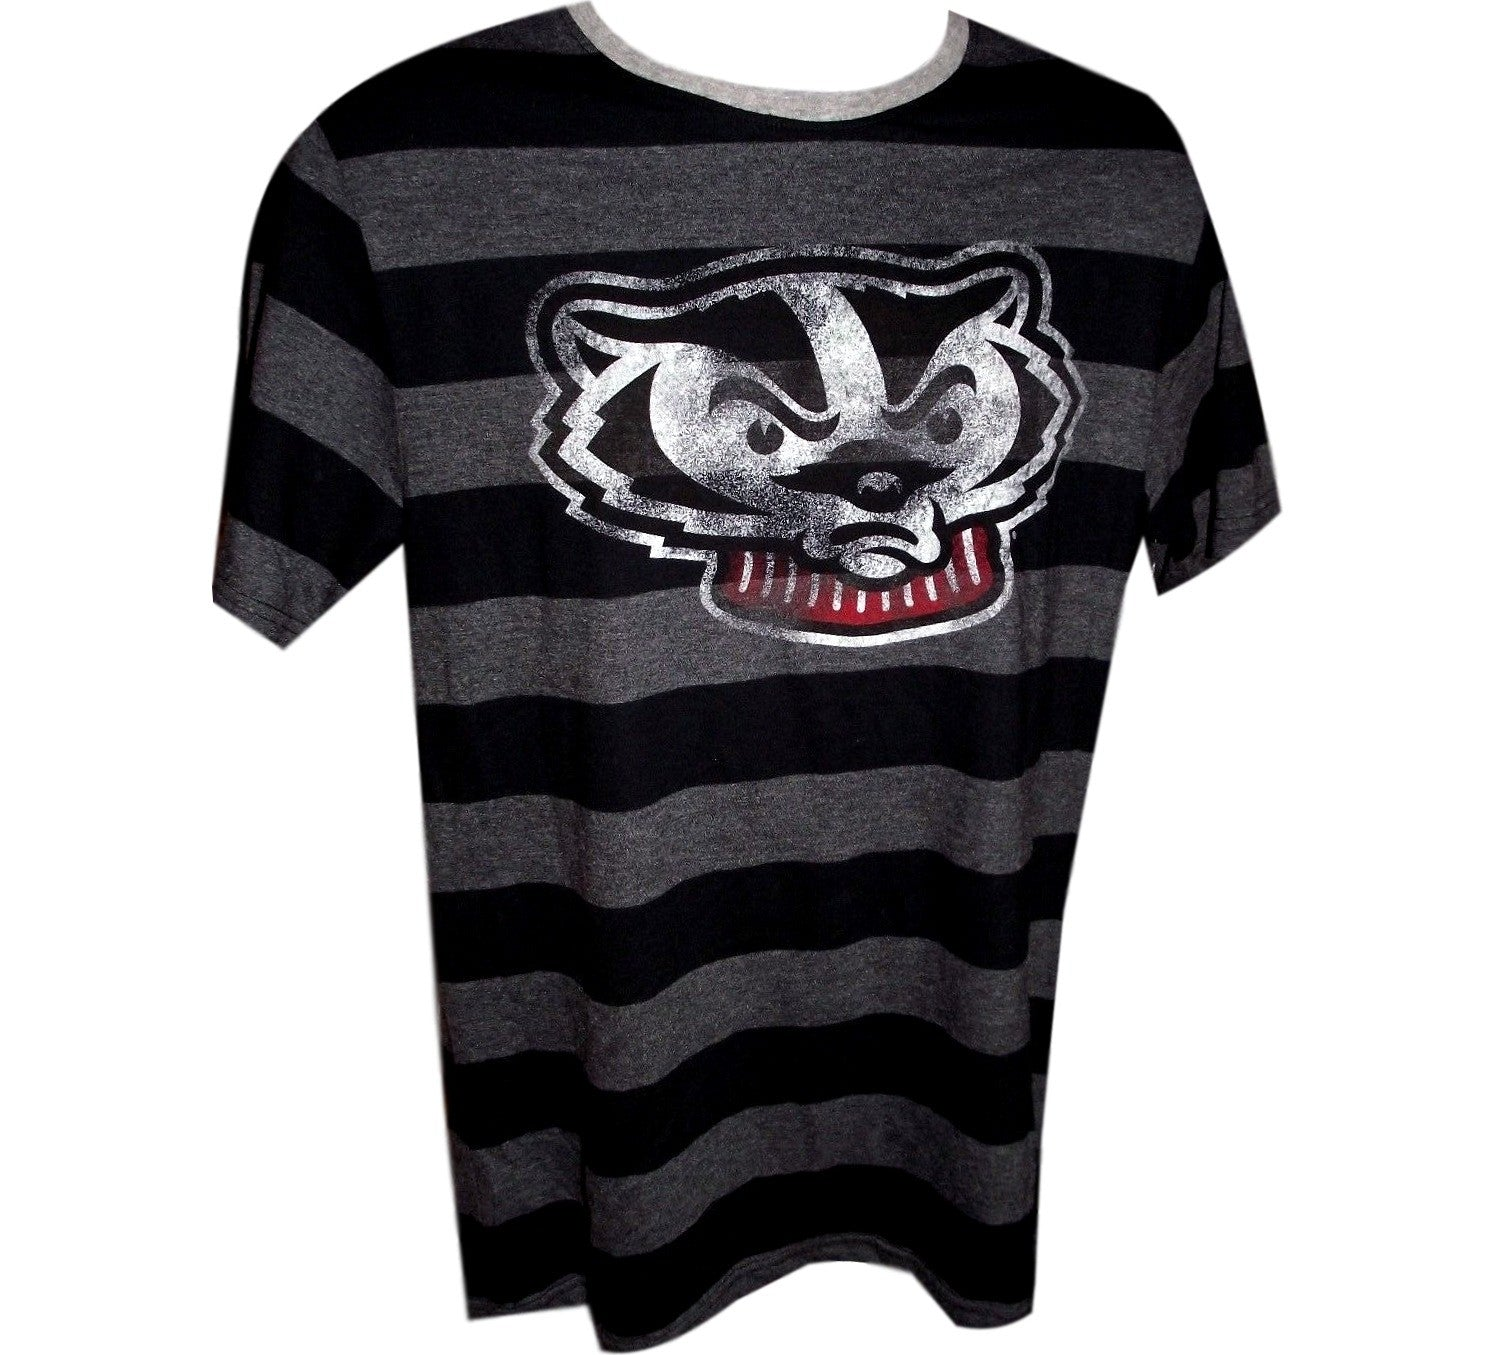 Badgers Retro College Shirt - And Still